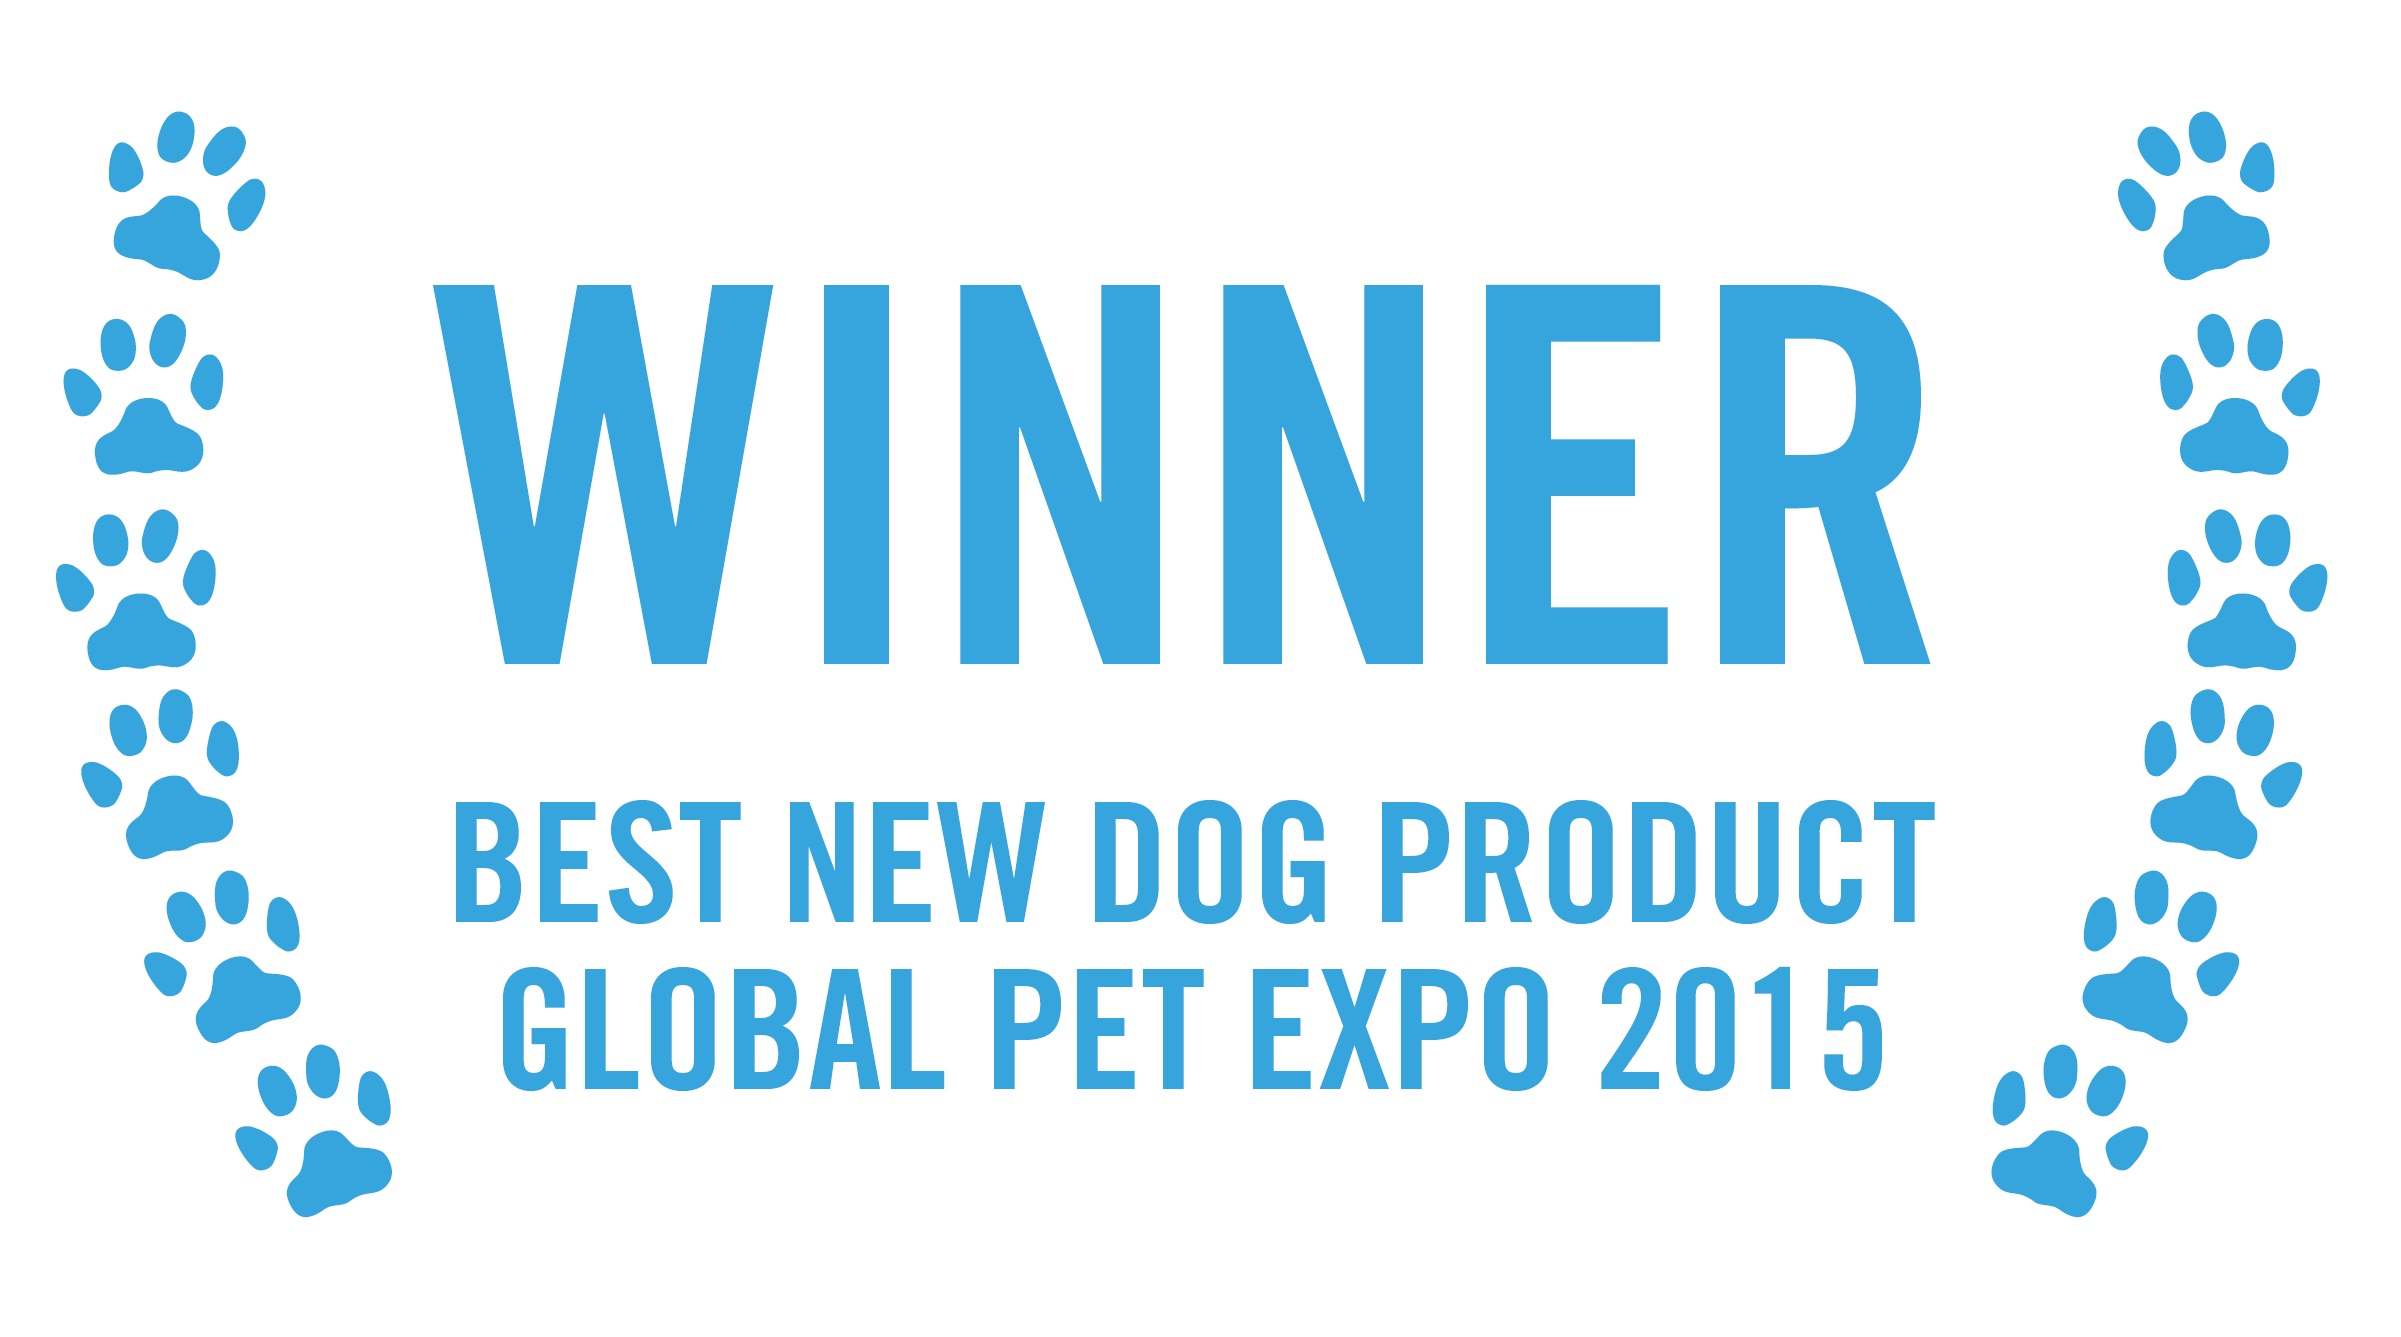 iFetch Too Global Pet Expo 2015